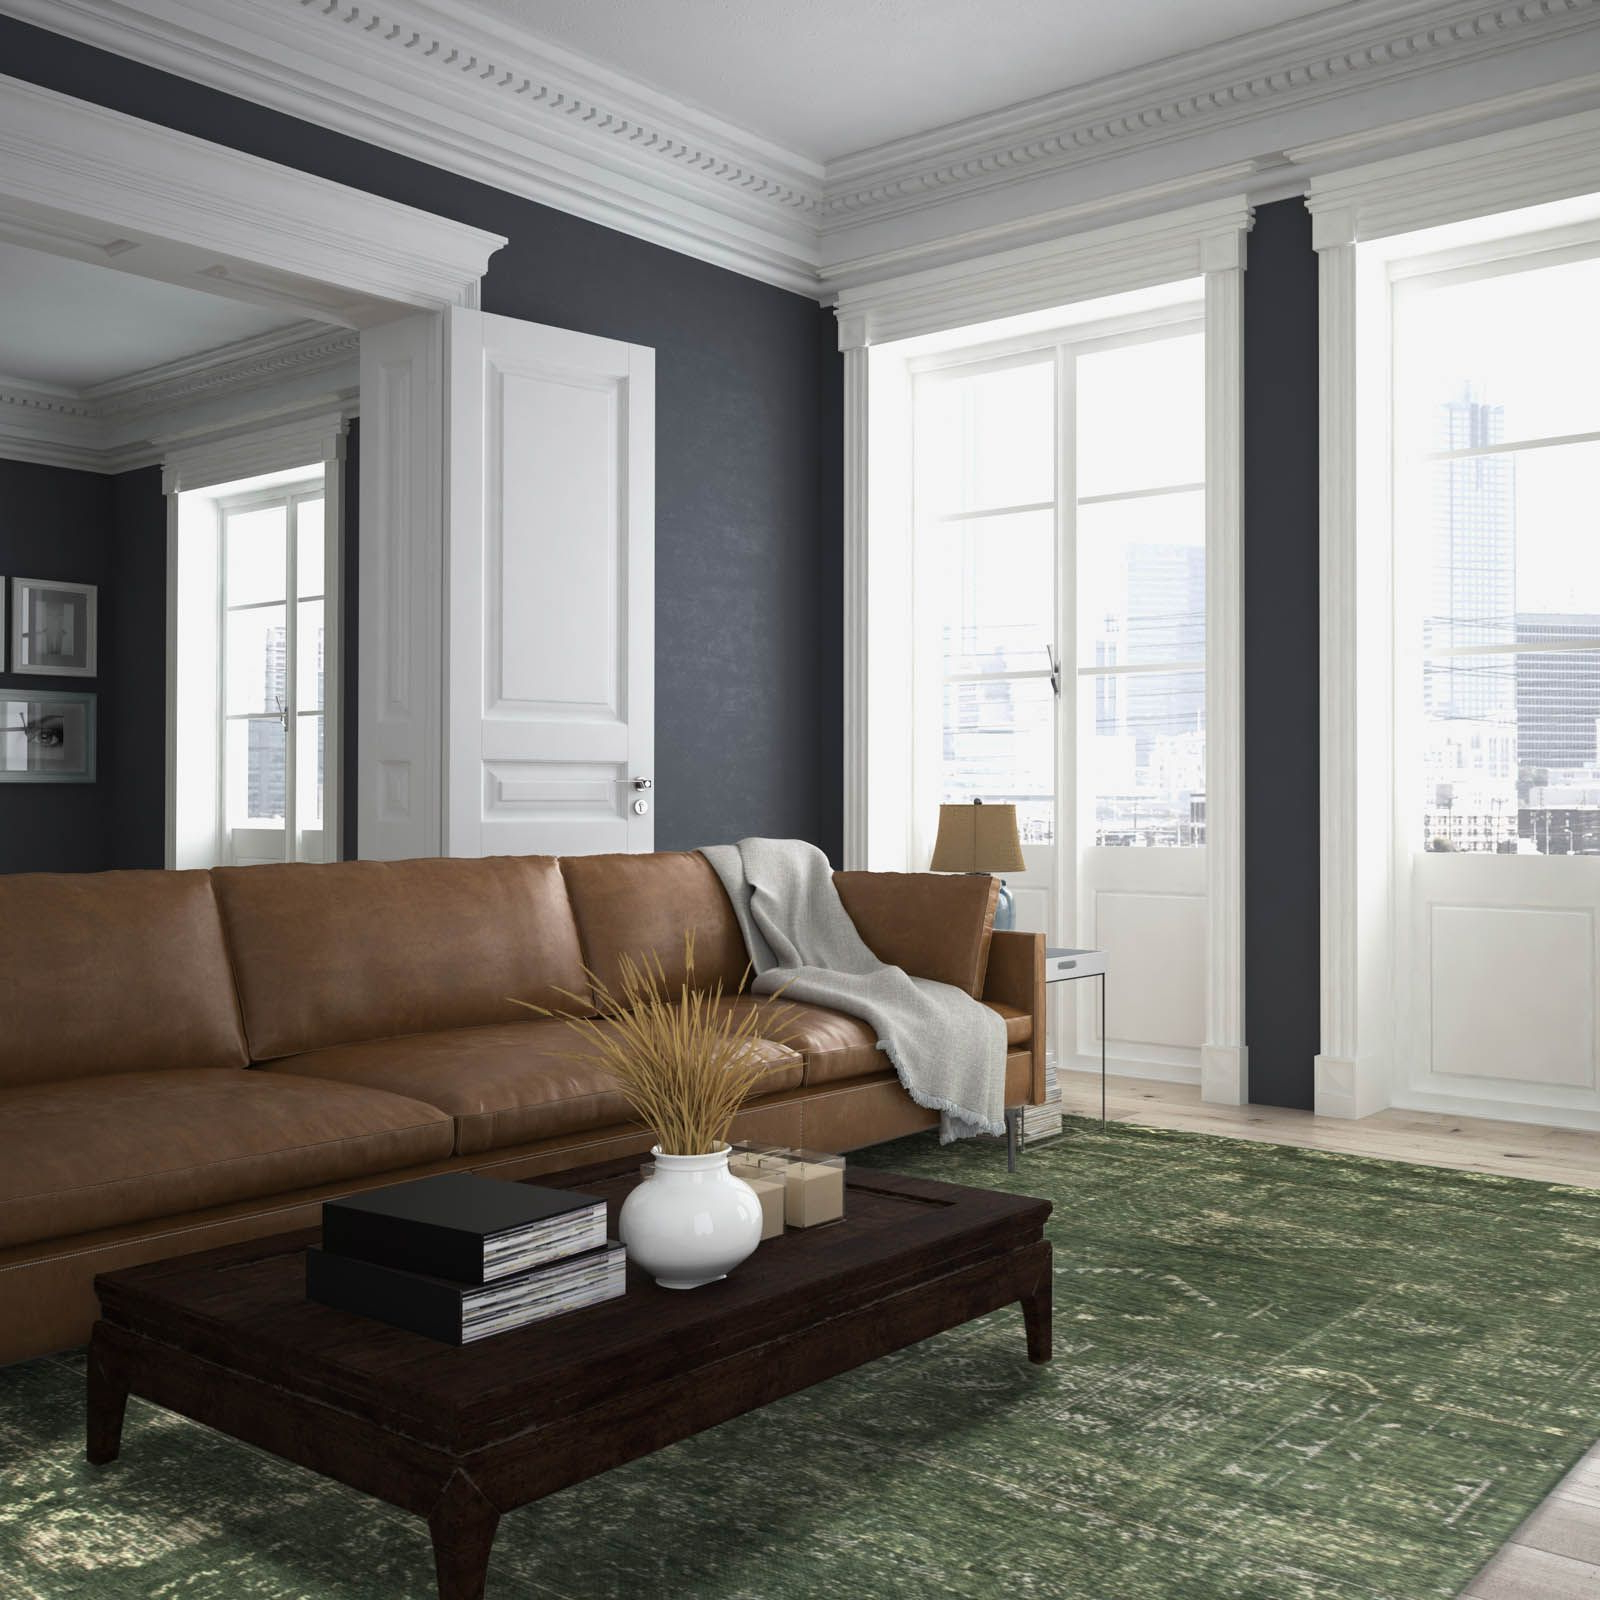 Trendy Cromwell Modular Sectional Sofas With Louis De Poortere Fading World Rugs 8271 Perrier Green (View 15 of 20)